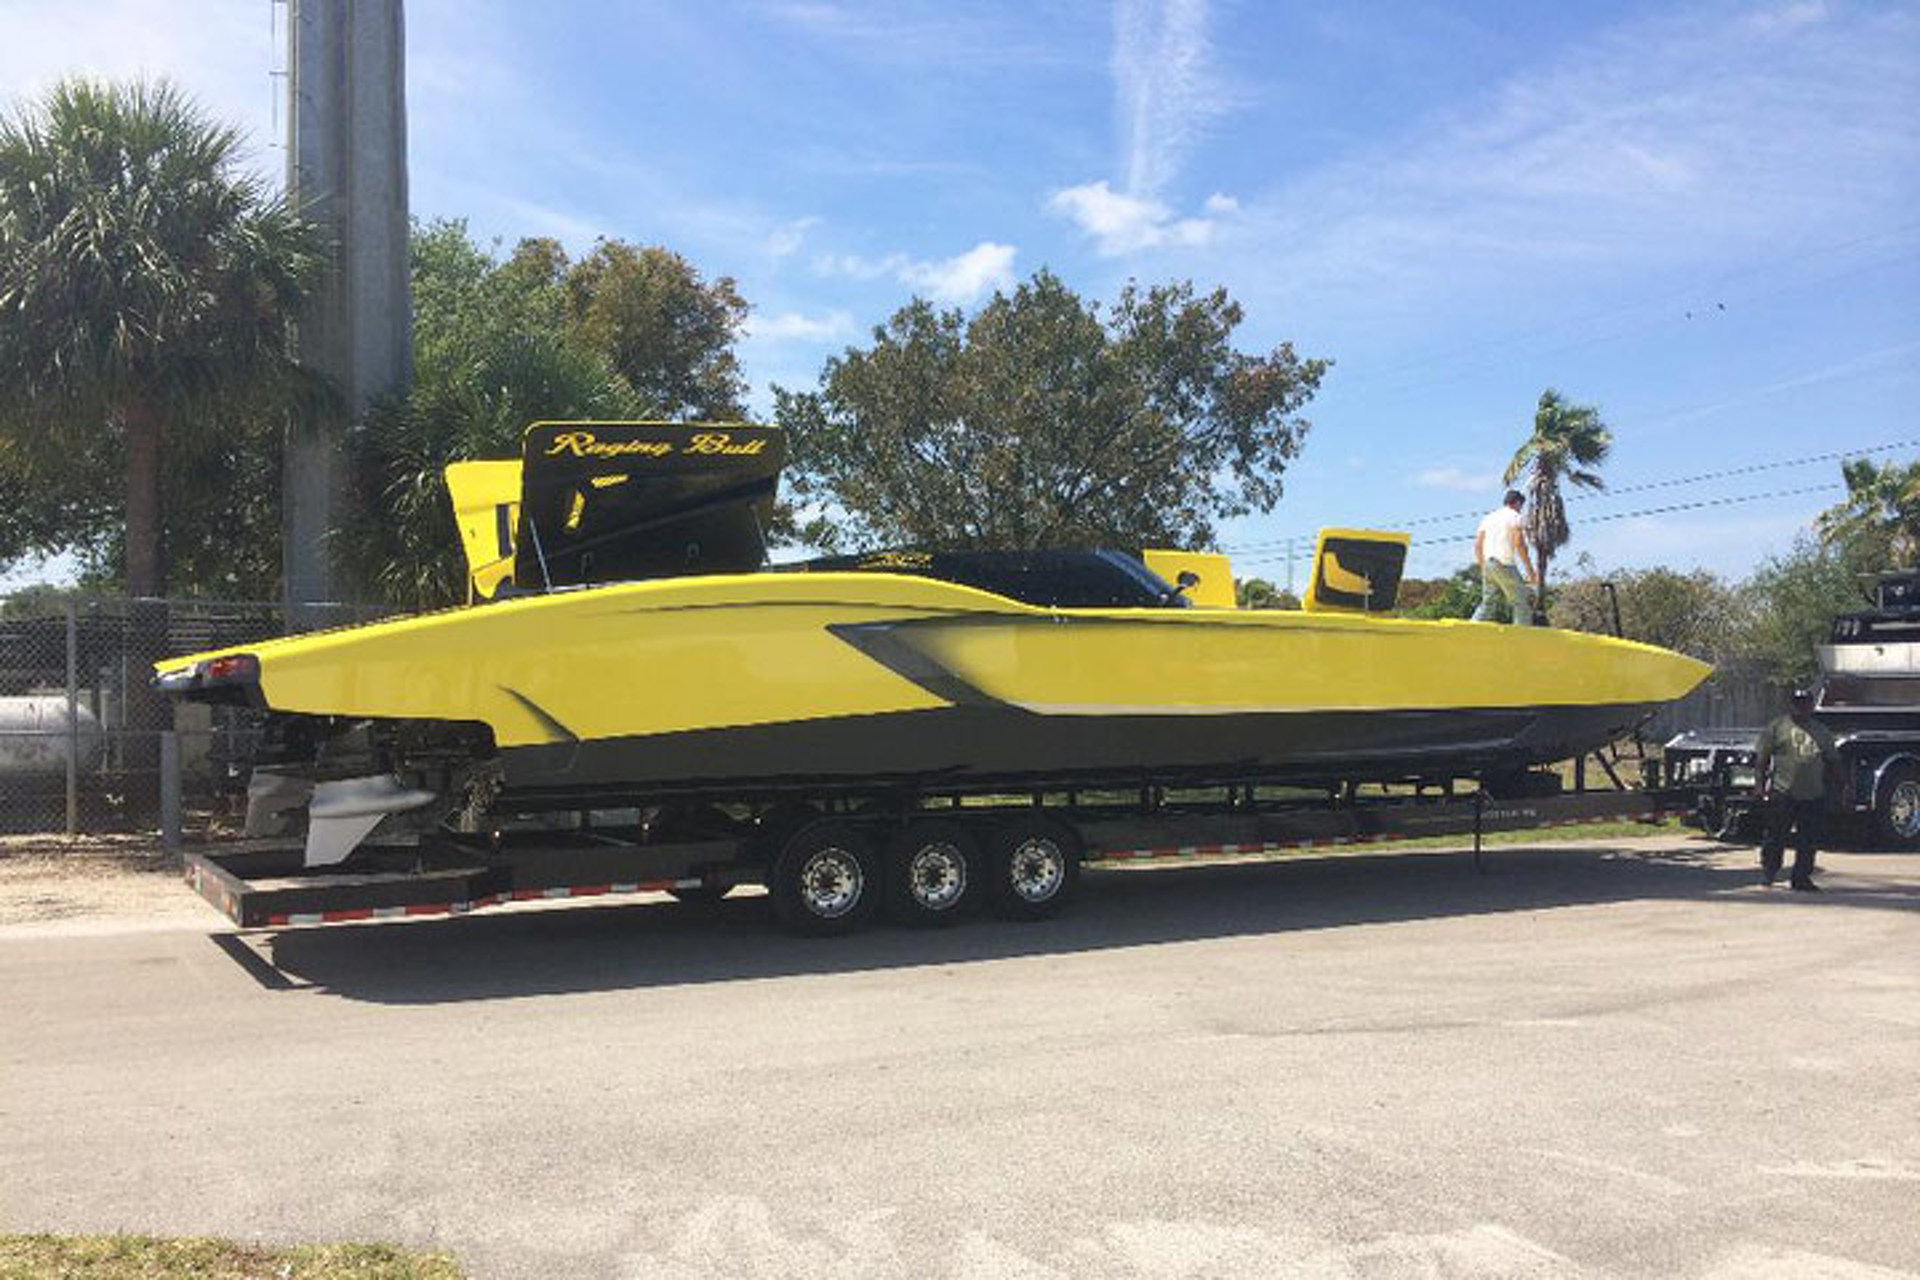 If Lamborghini Made Boats... Well You Get The Idea